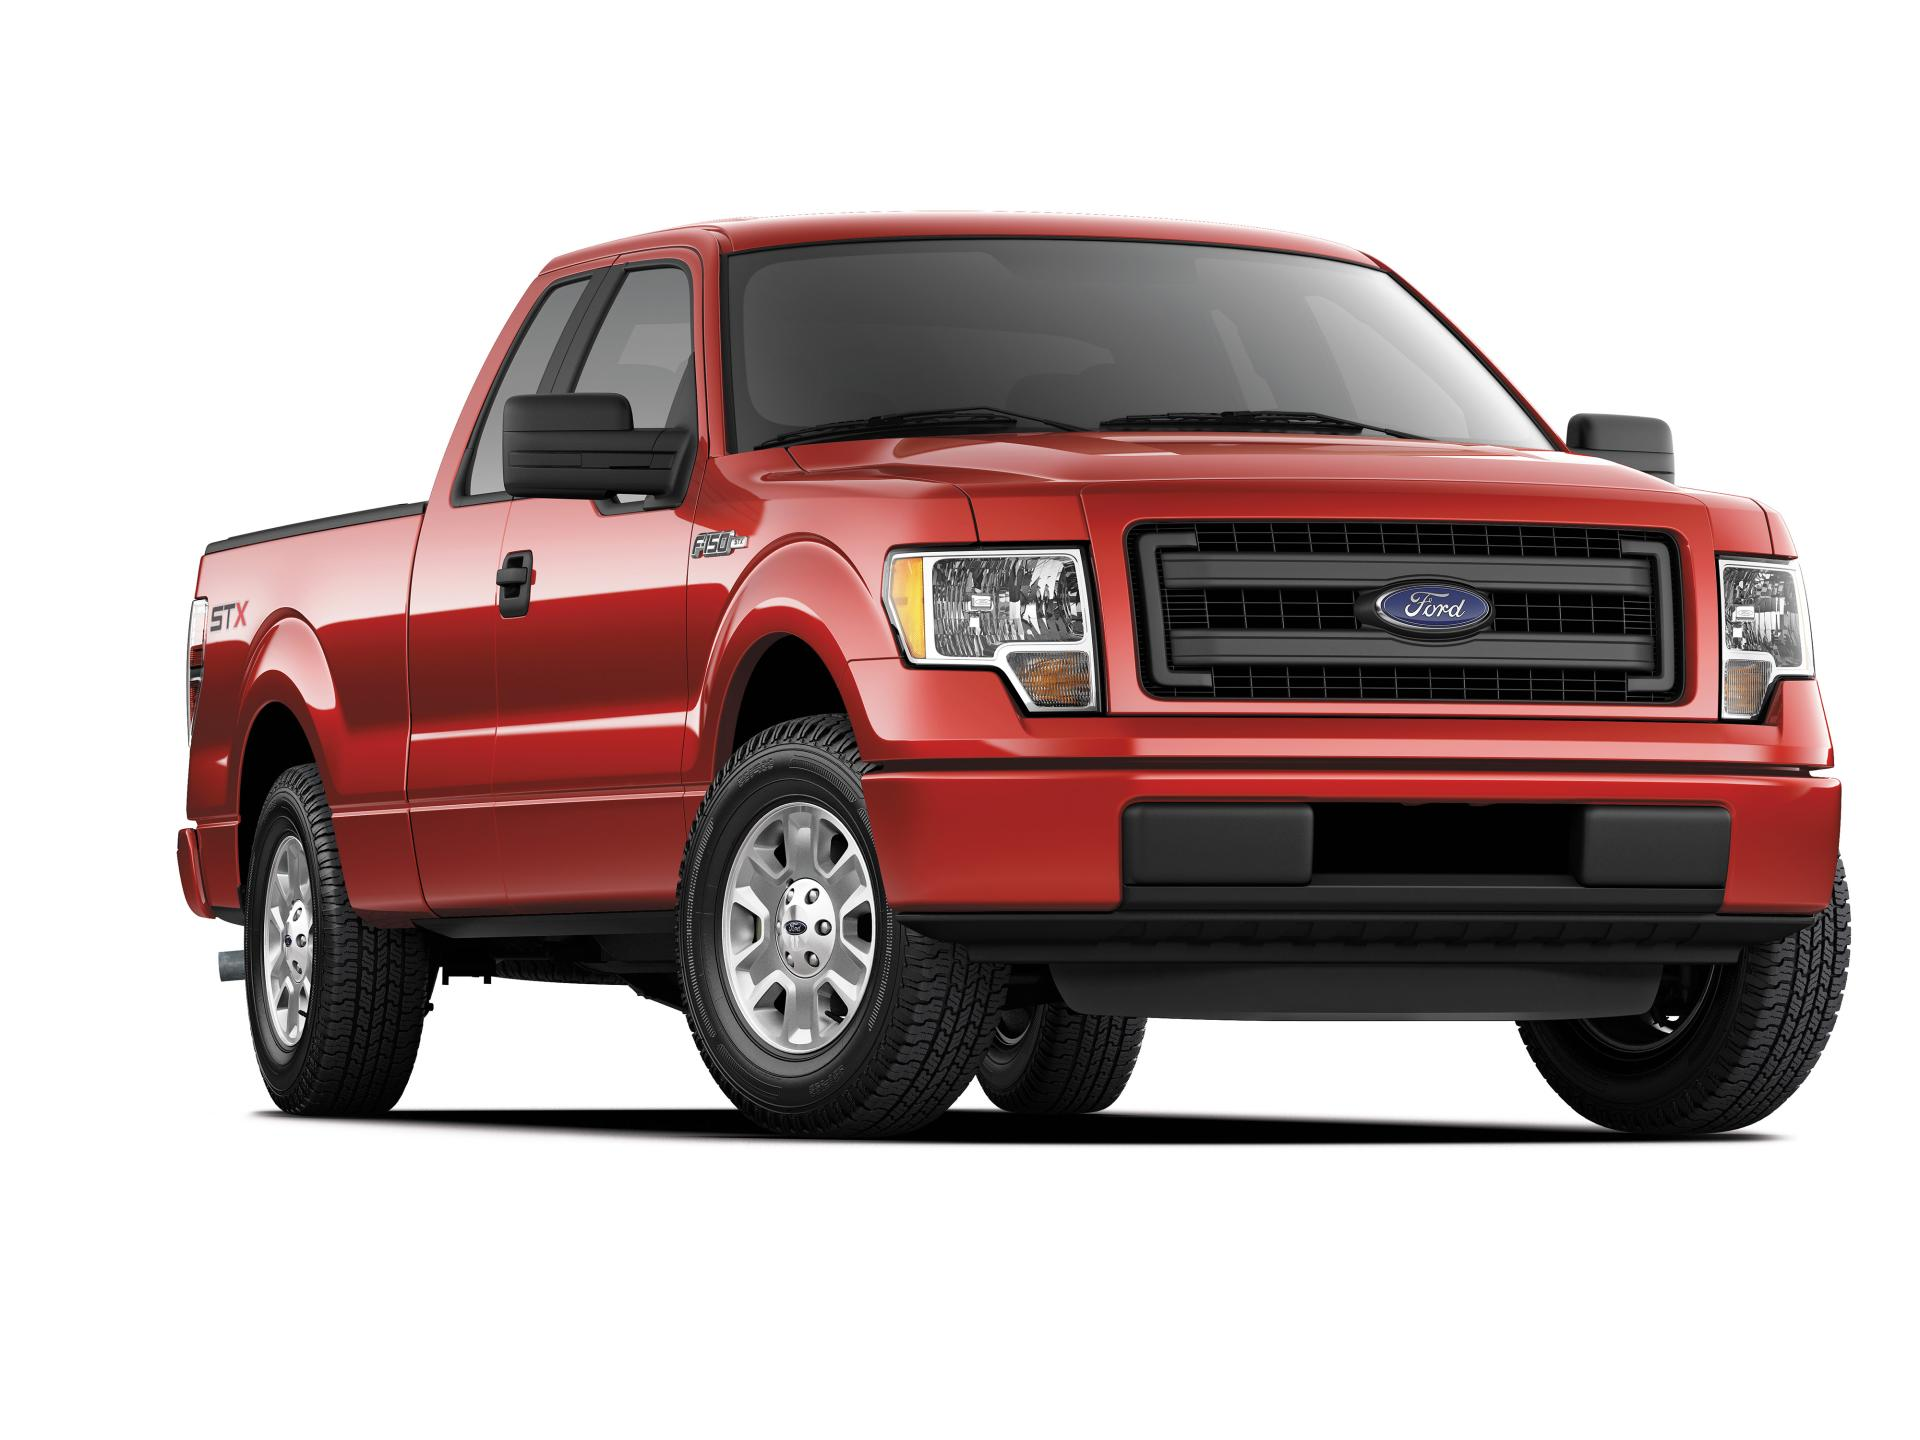 2014 ford f 150 stx. Black Bedroom Furniture Sets. Home Design Ideas